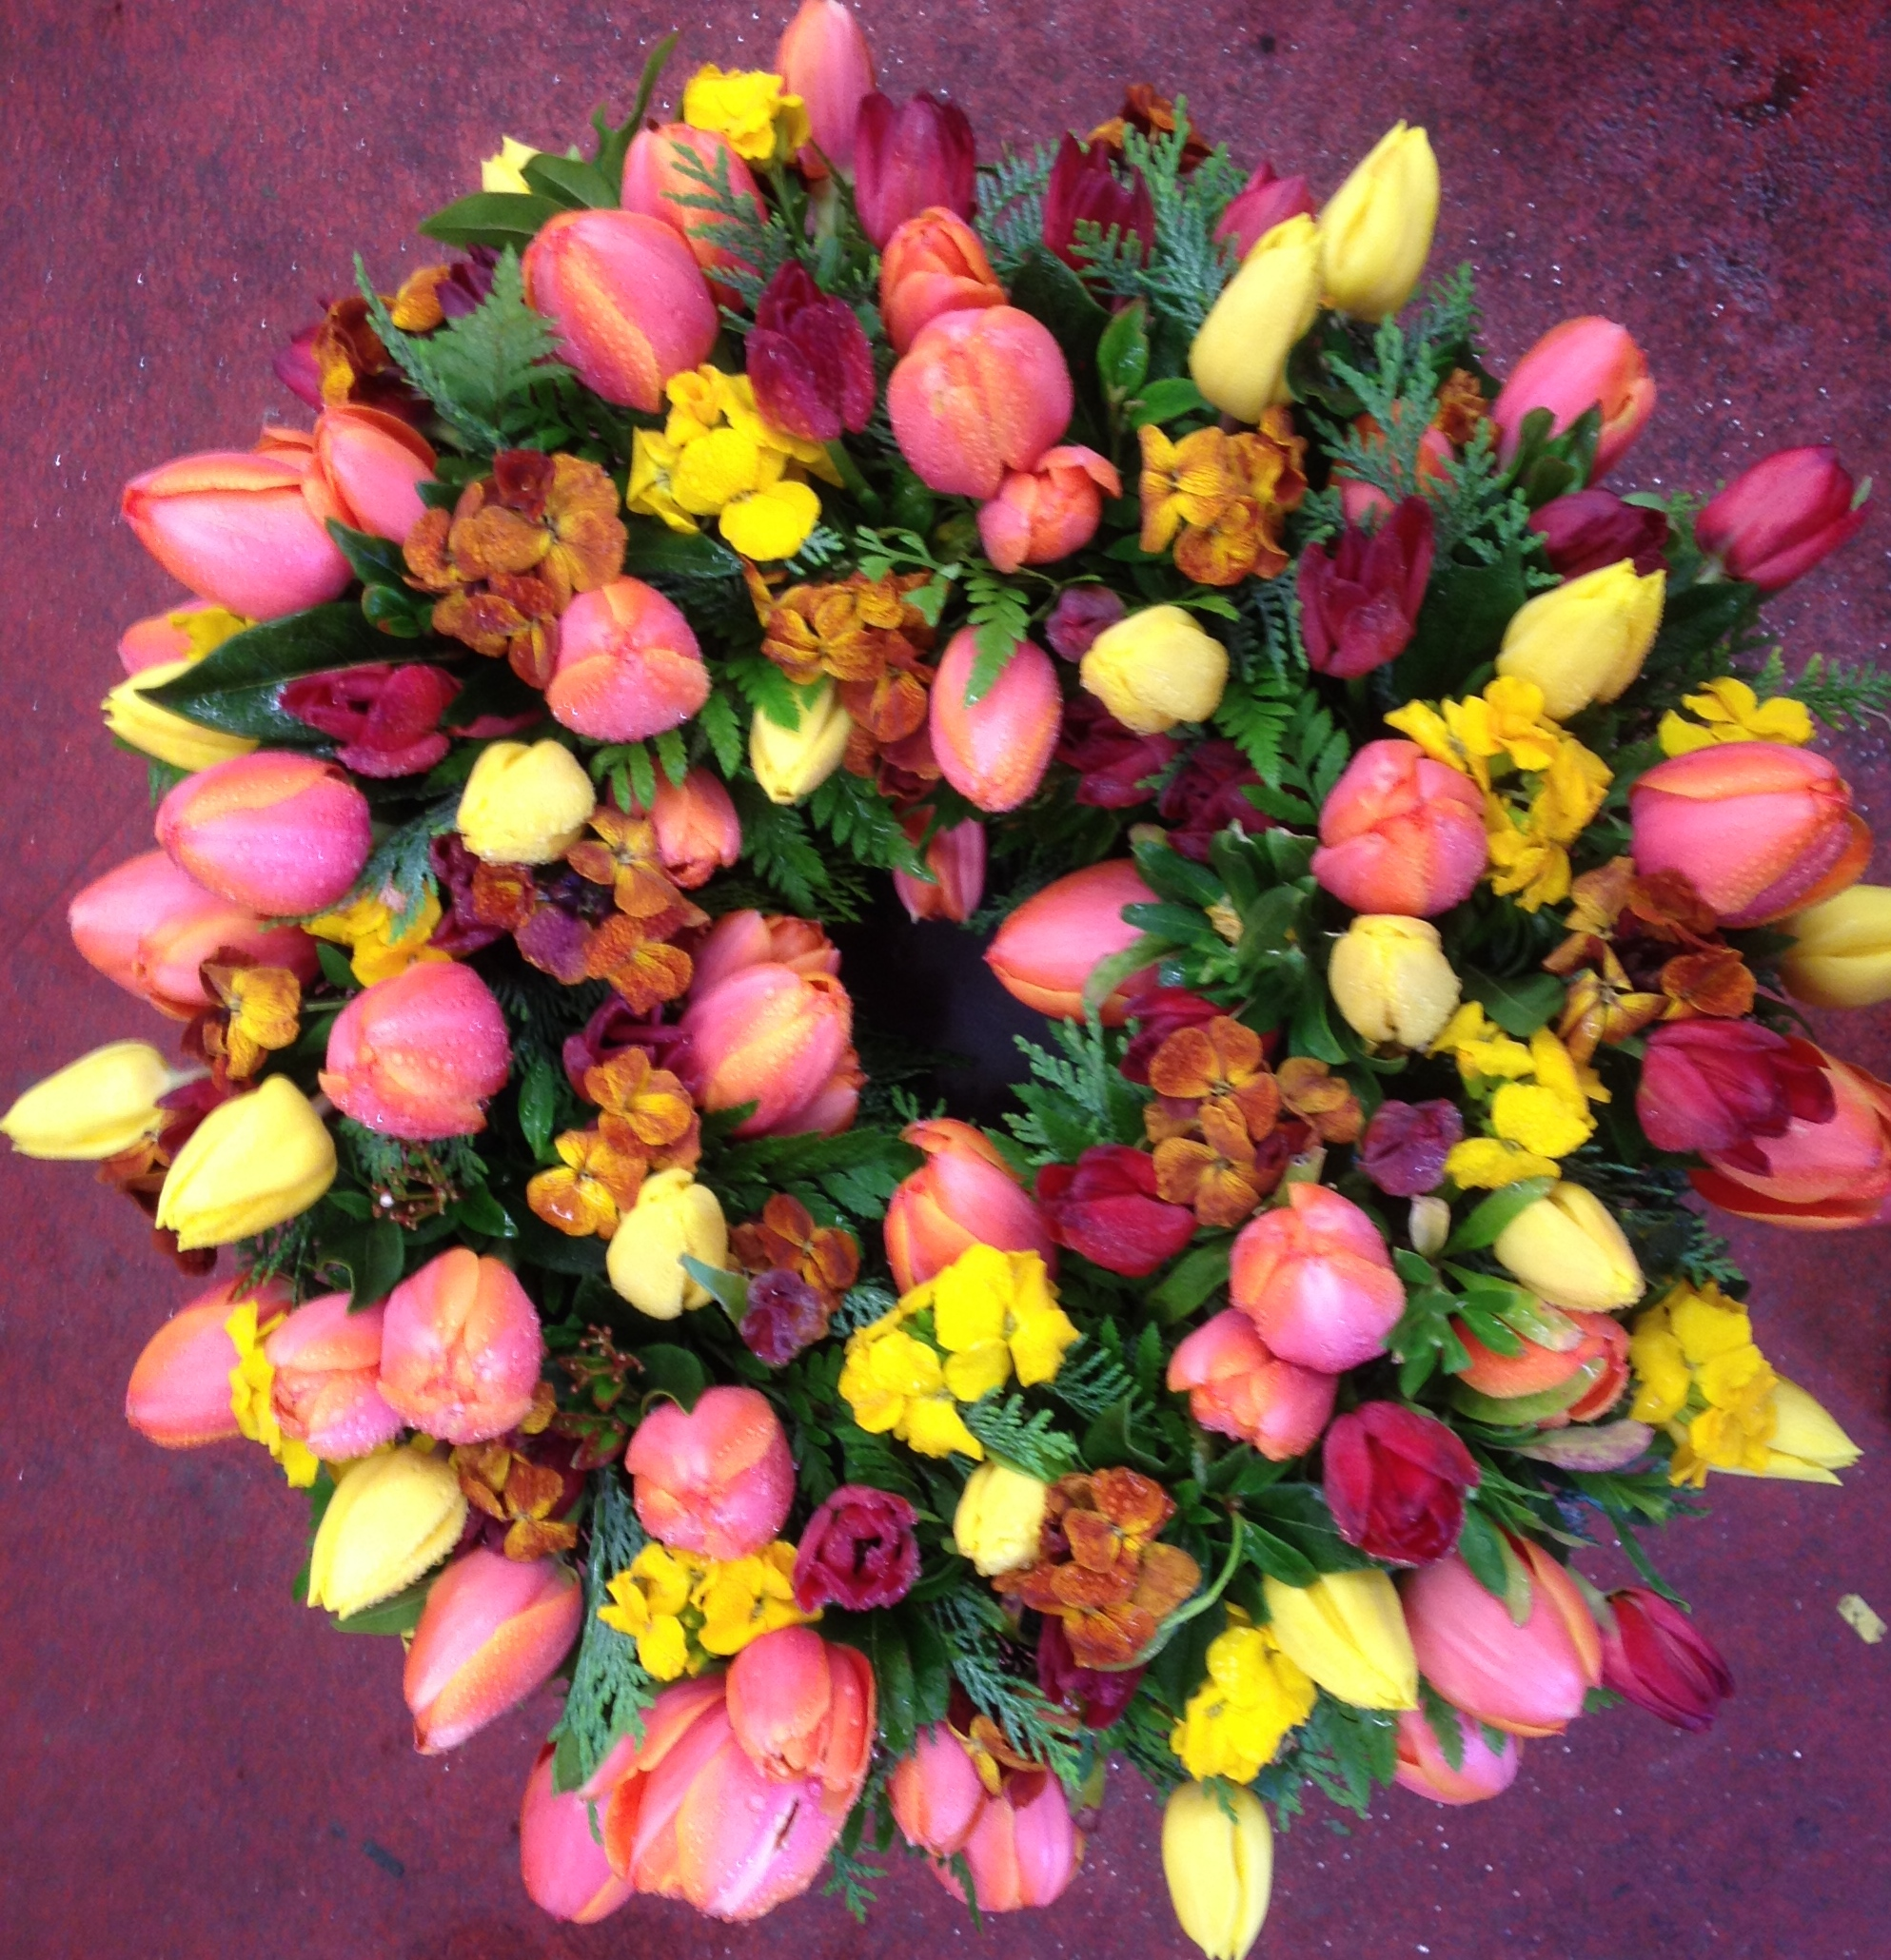 Funeral flower pictures john thomas florist vibrant wreath with tulips and wall flowers izmirmasajfo